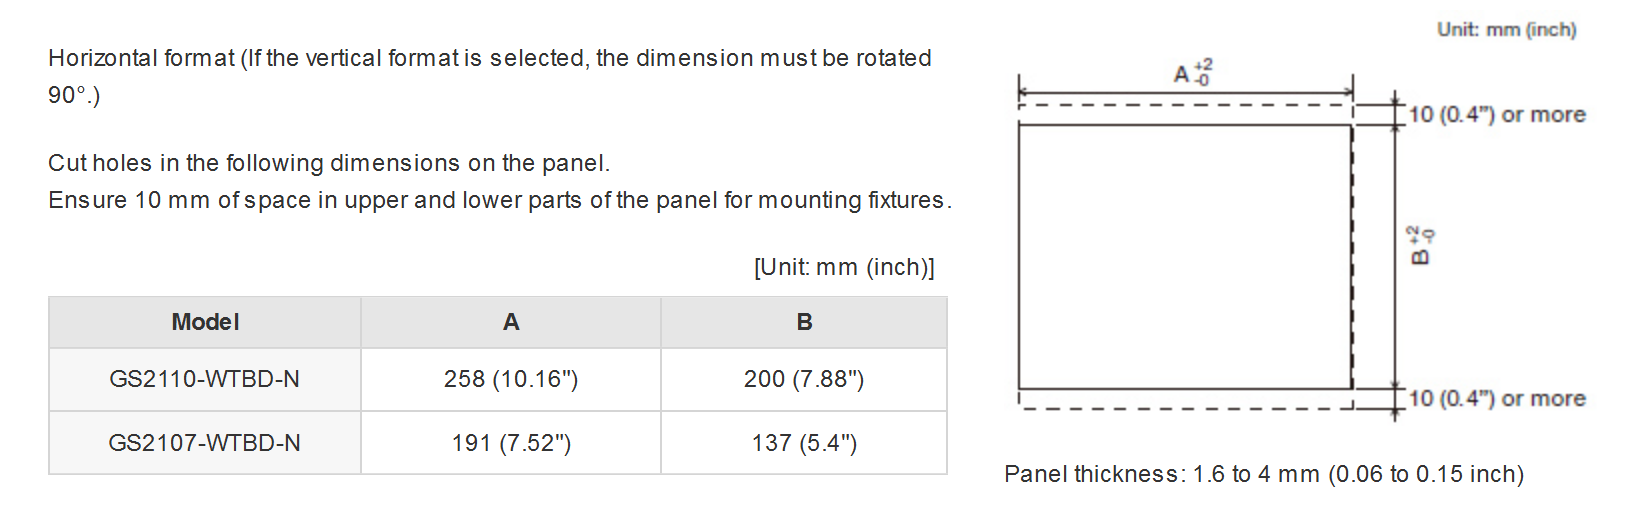 GS21-N Sseries Dimensions 3